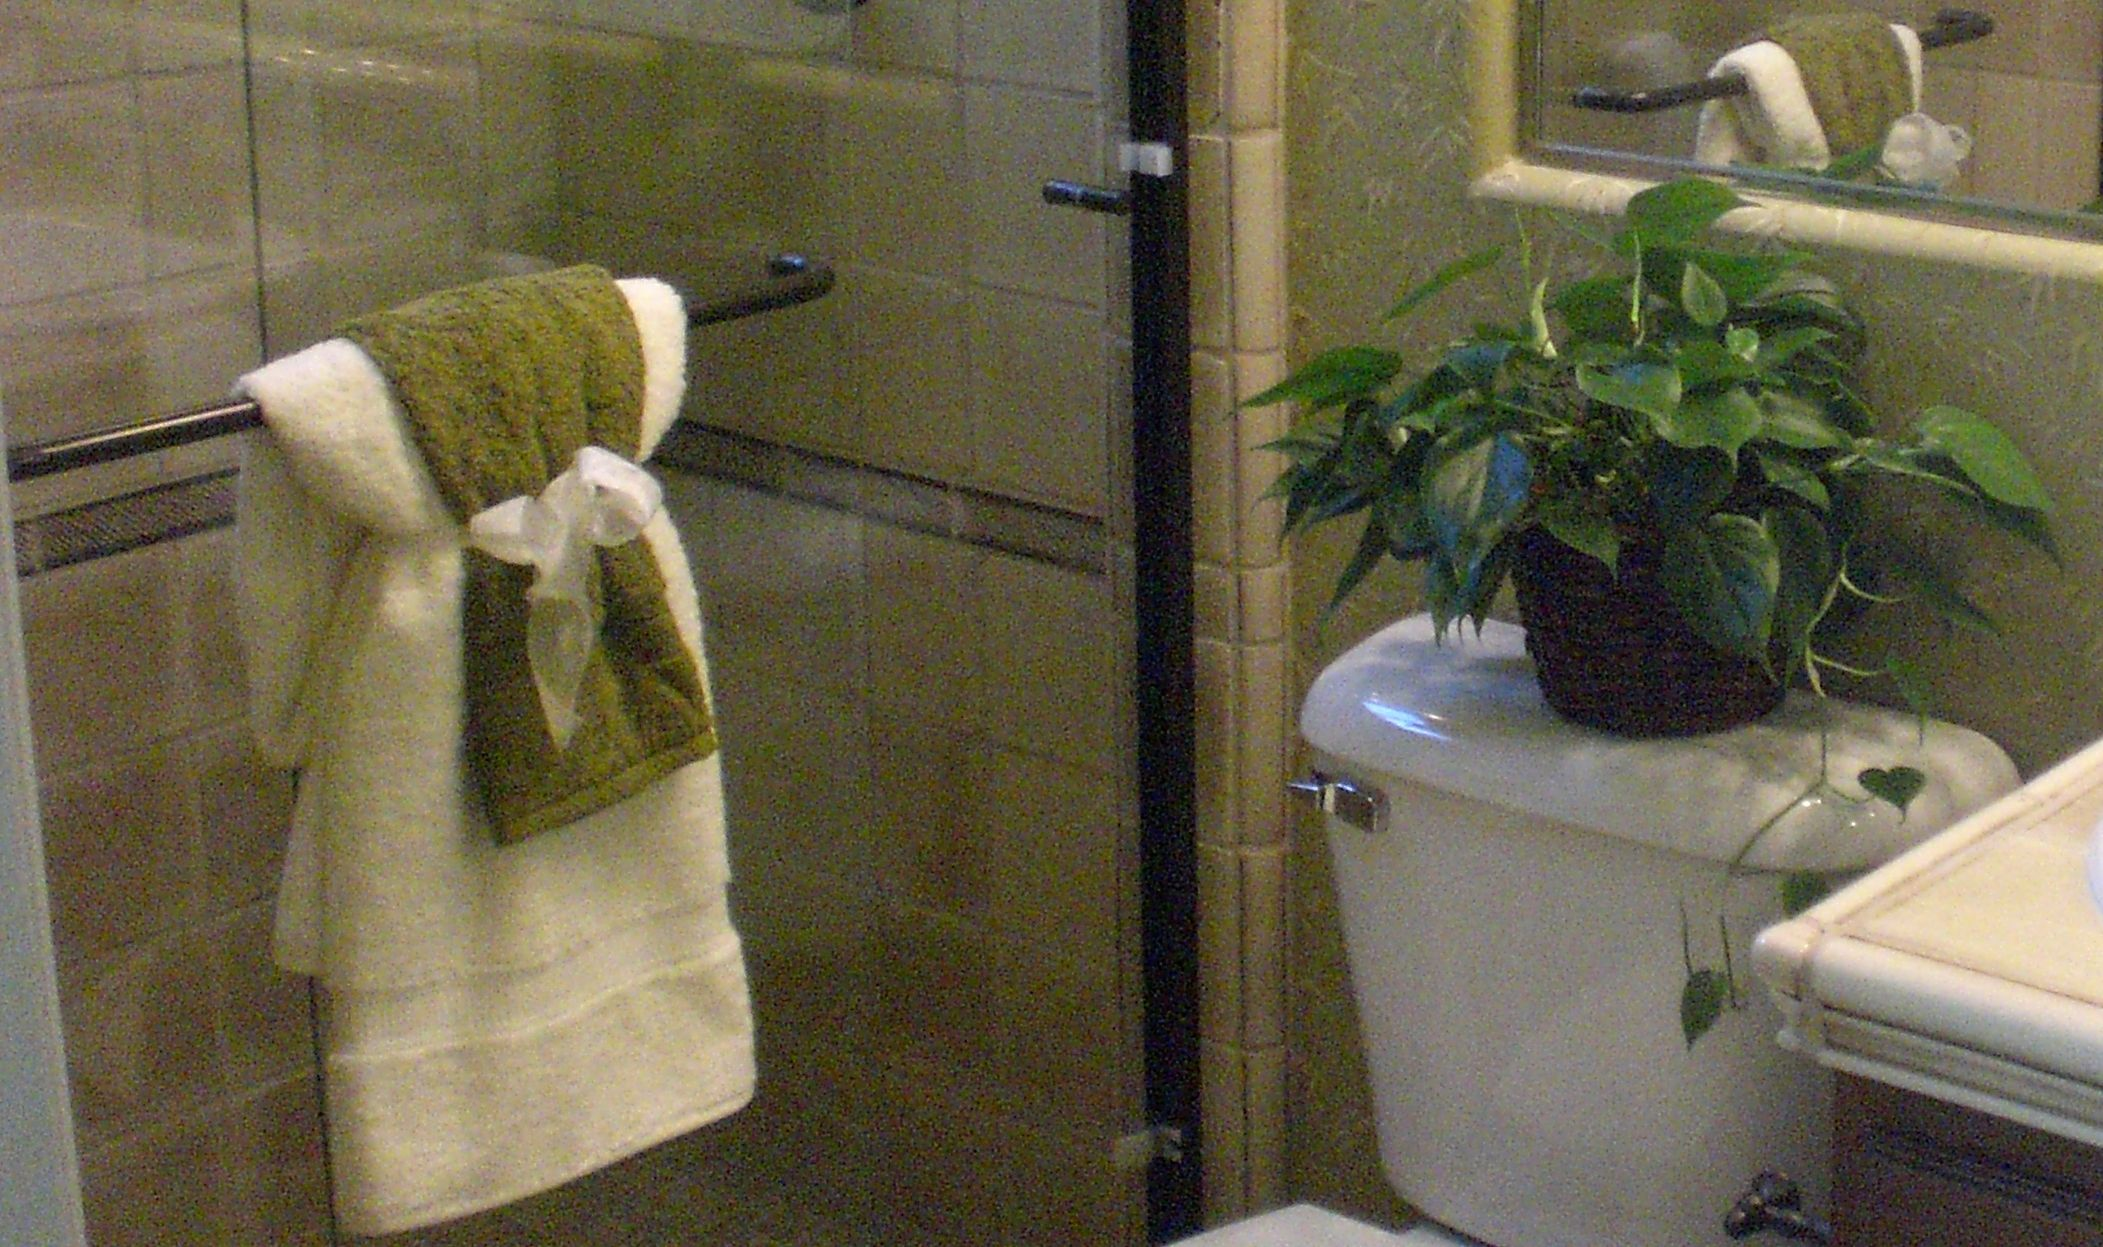 Explore Bathroom Towel Display And More!